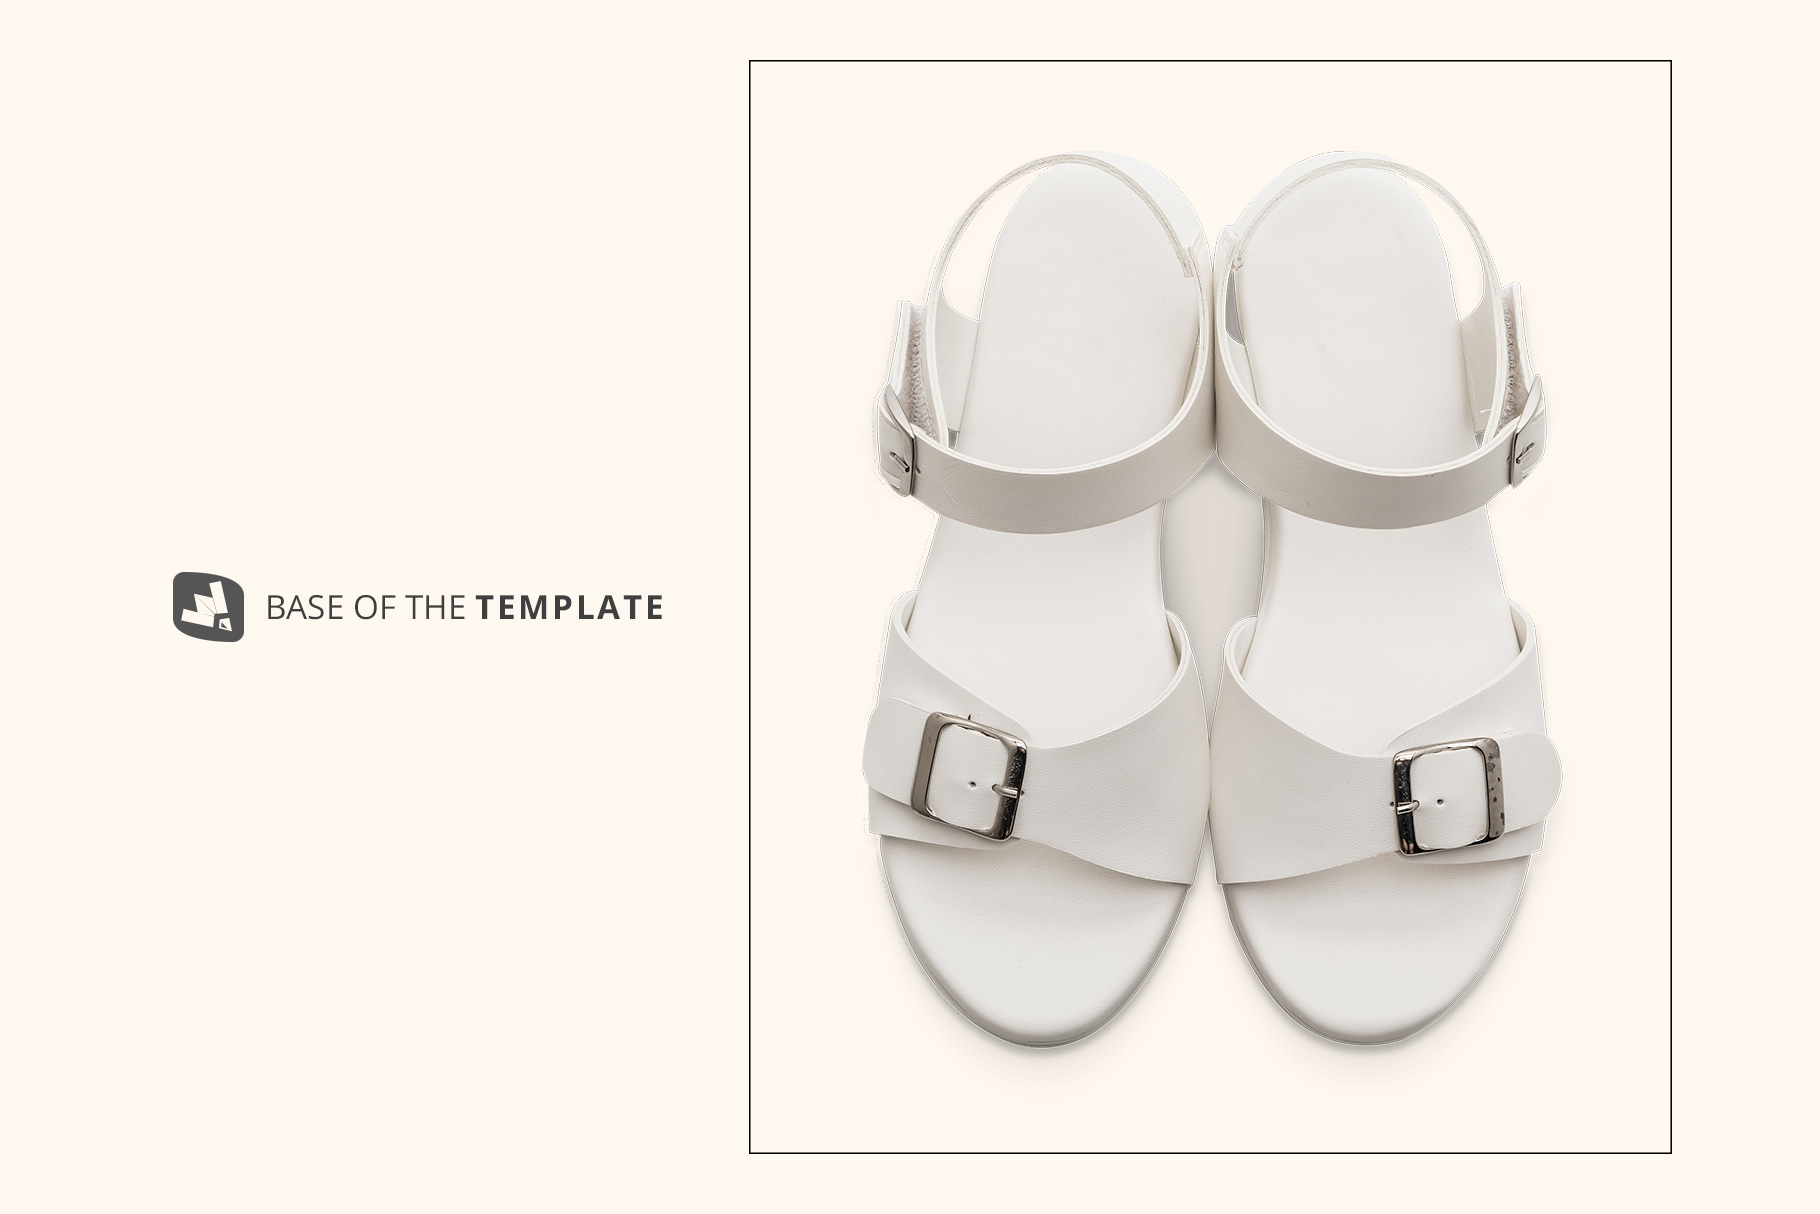 base image of the top view leather sandal mockup